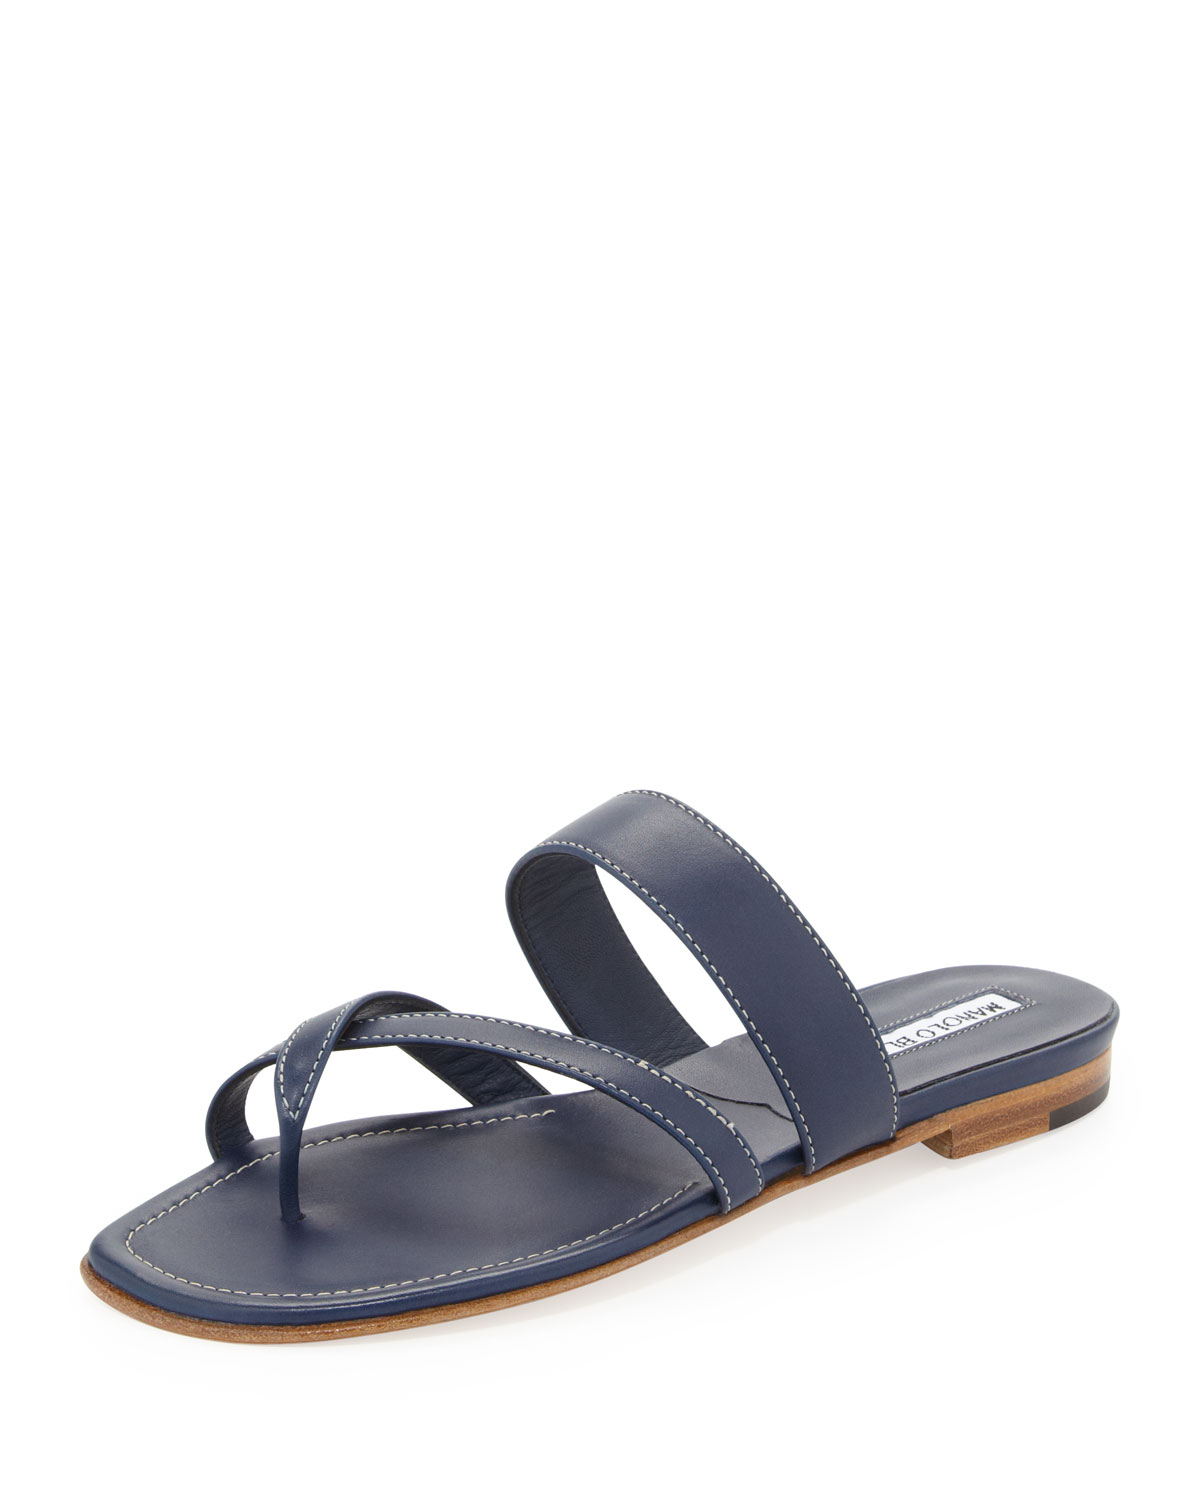 Lyst Manolo Blahnik Susa Flat Leather Sandal In Blue